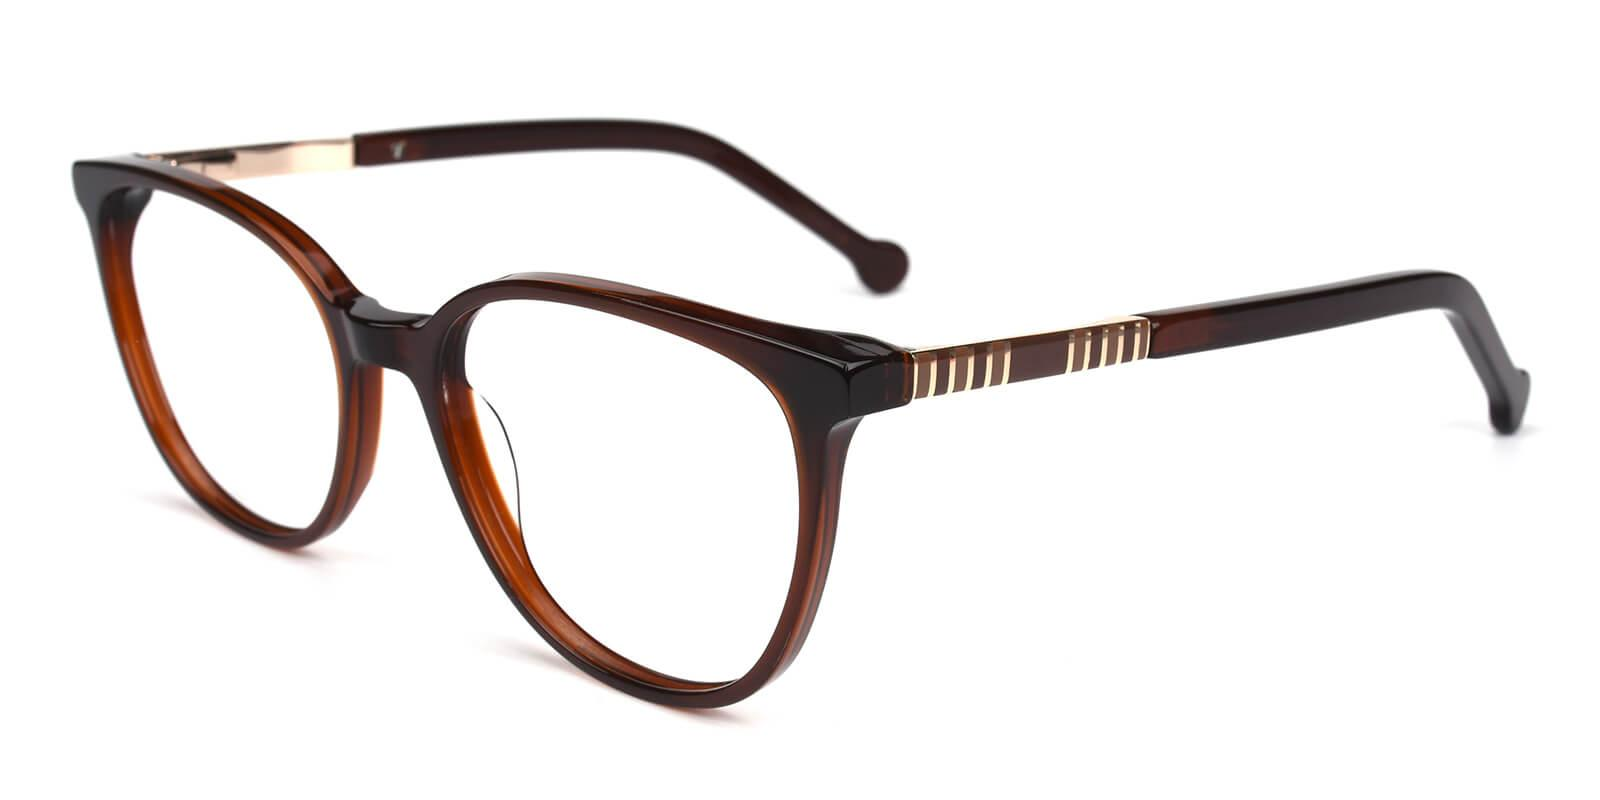 Dylan-Brown-Round-Acetate-Eyeglasses-additional1